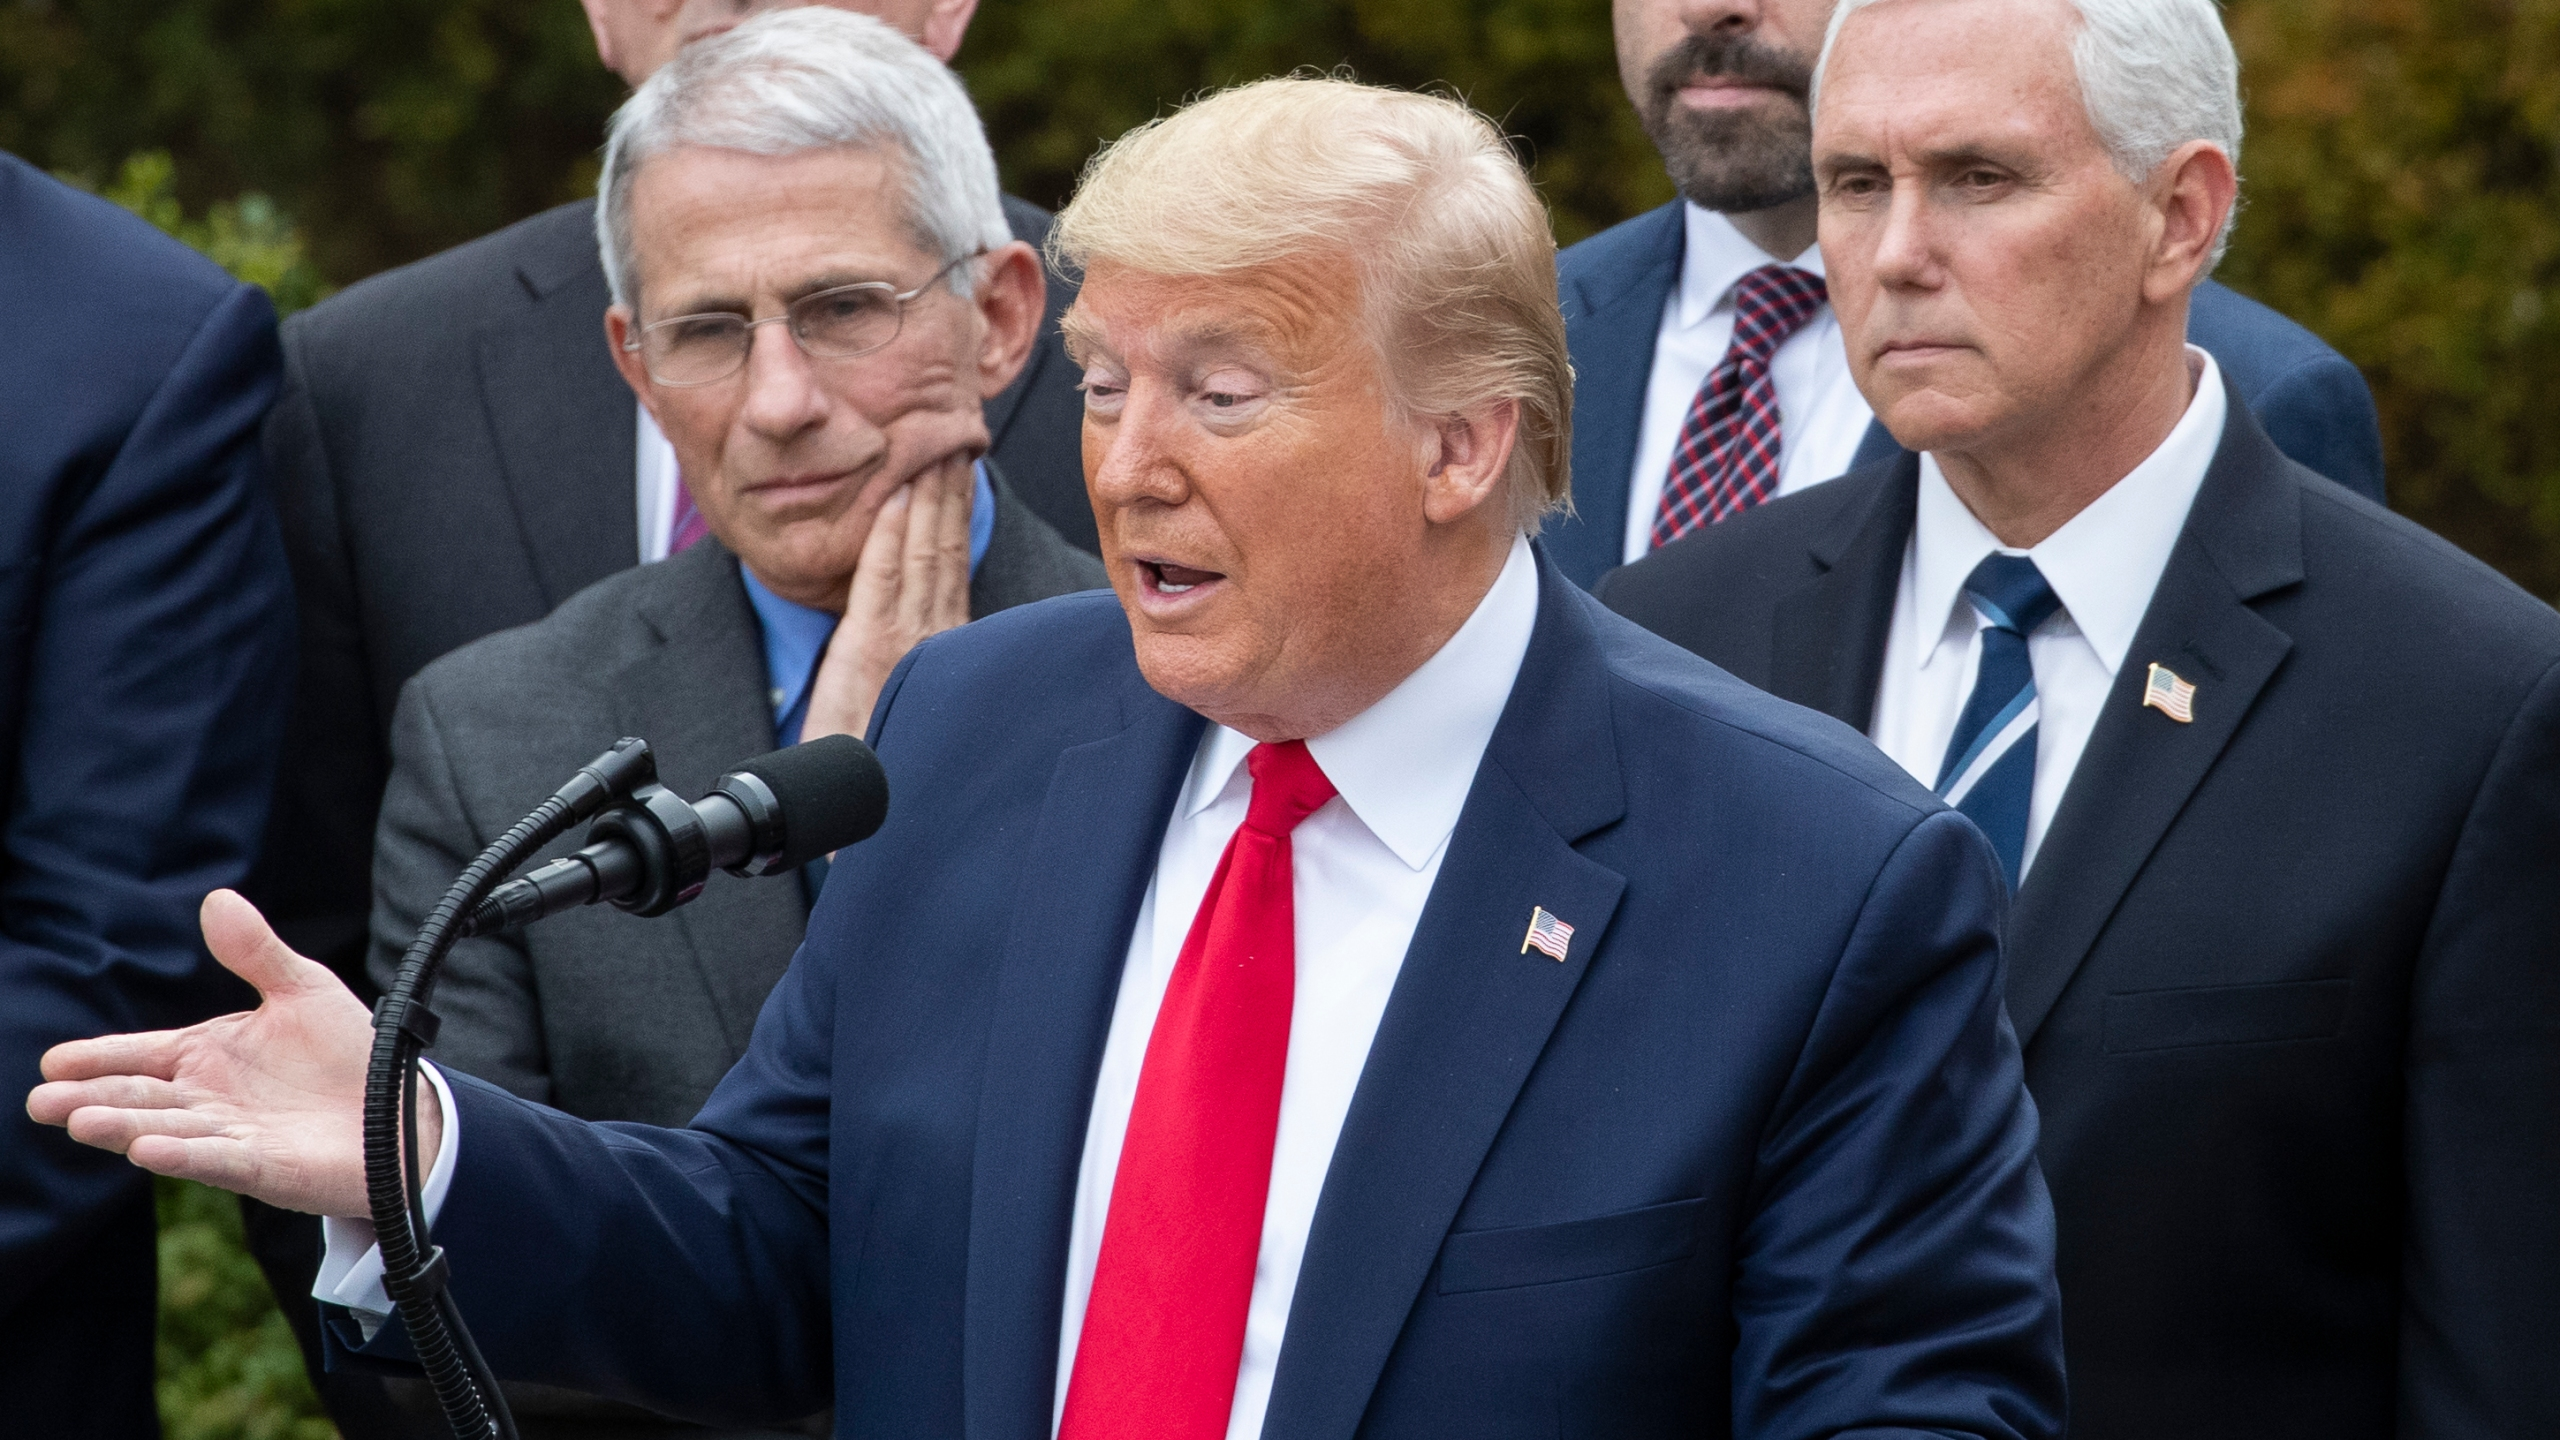 Donald Trump, Anthony Fauci, Mike Pence